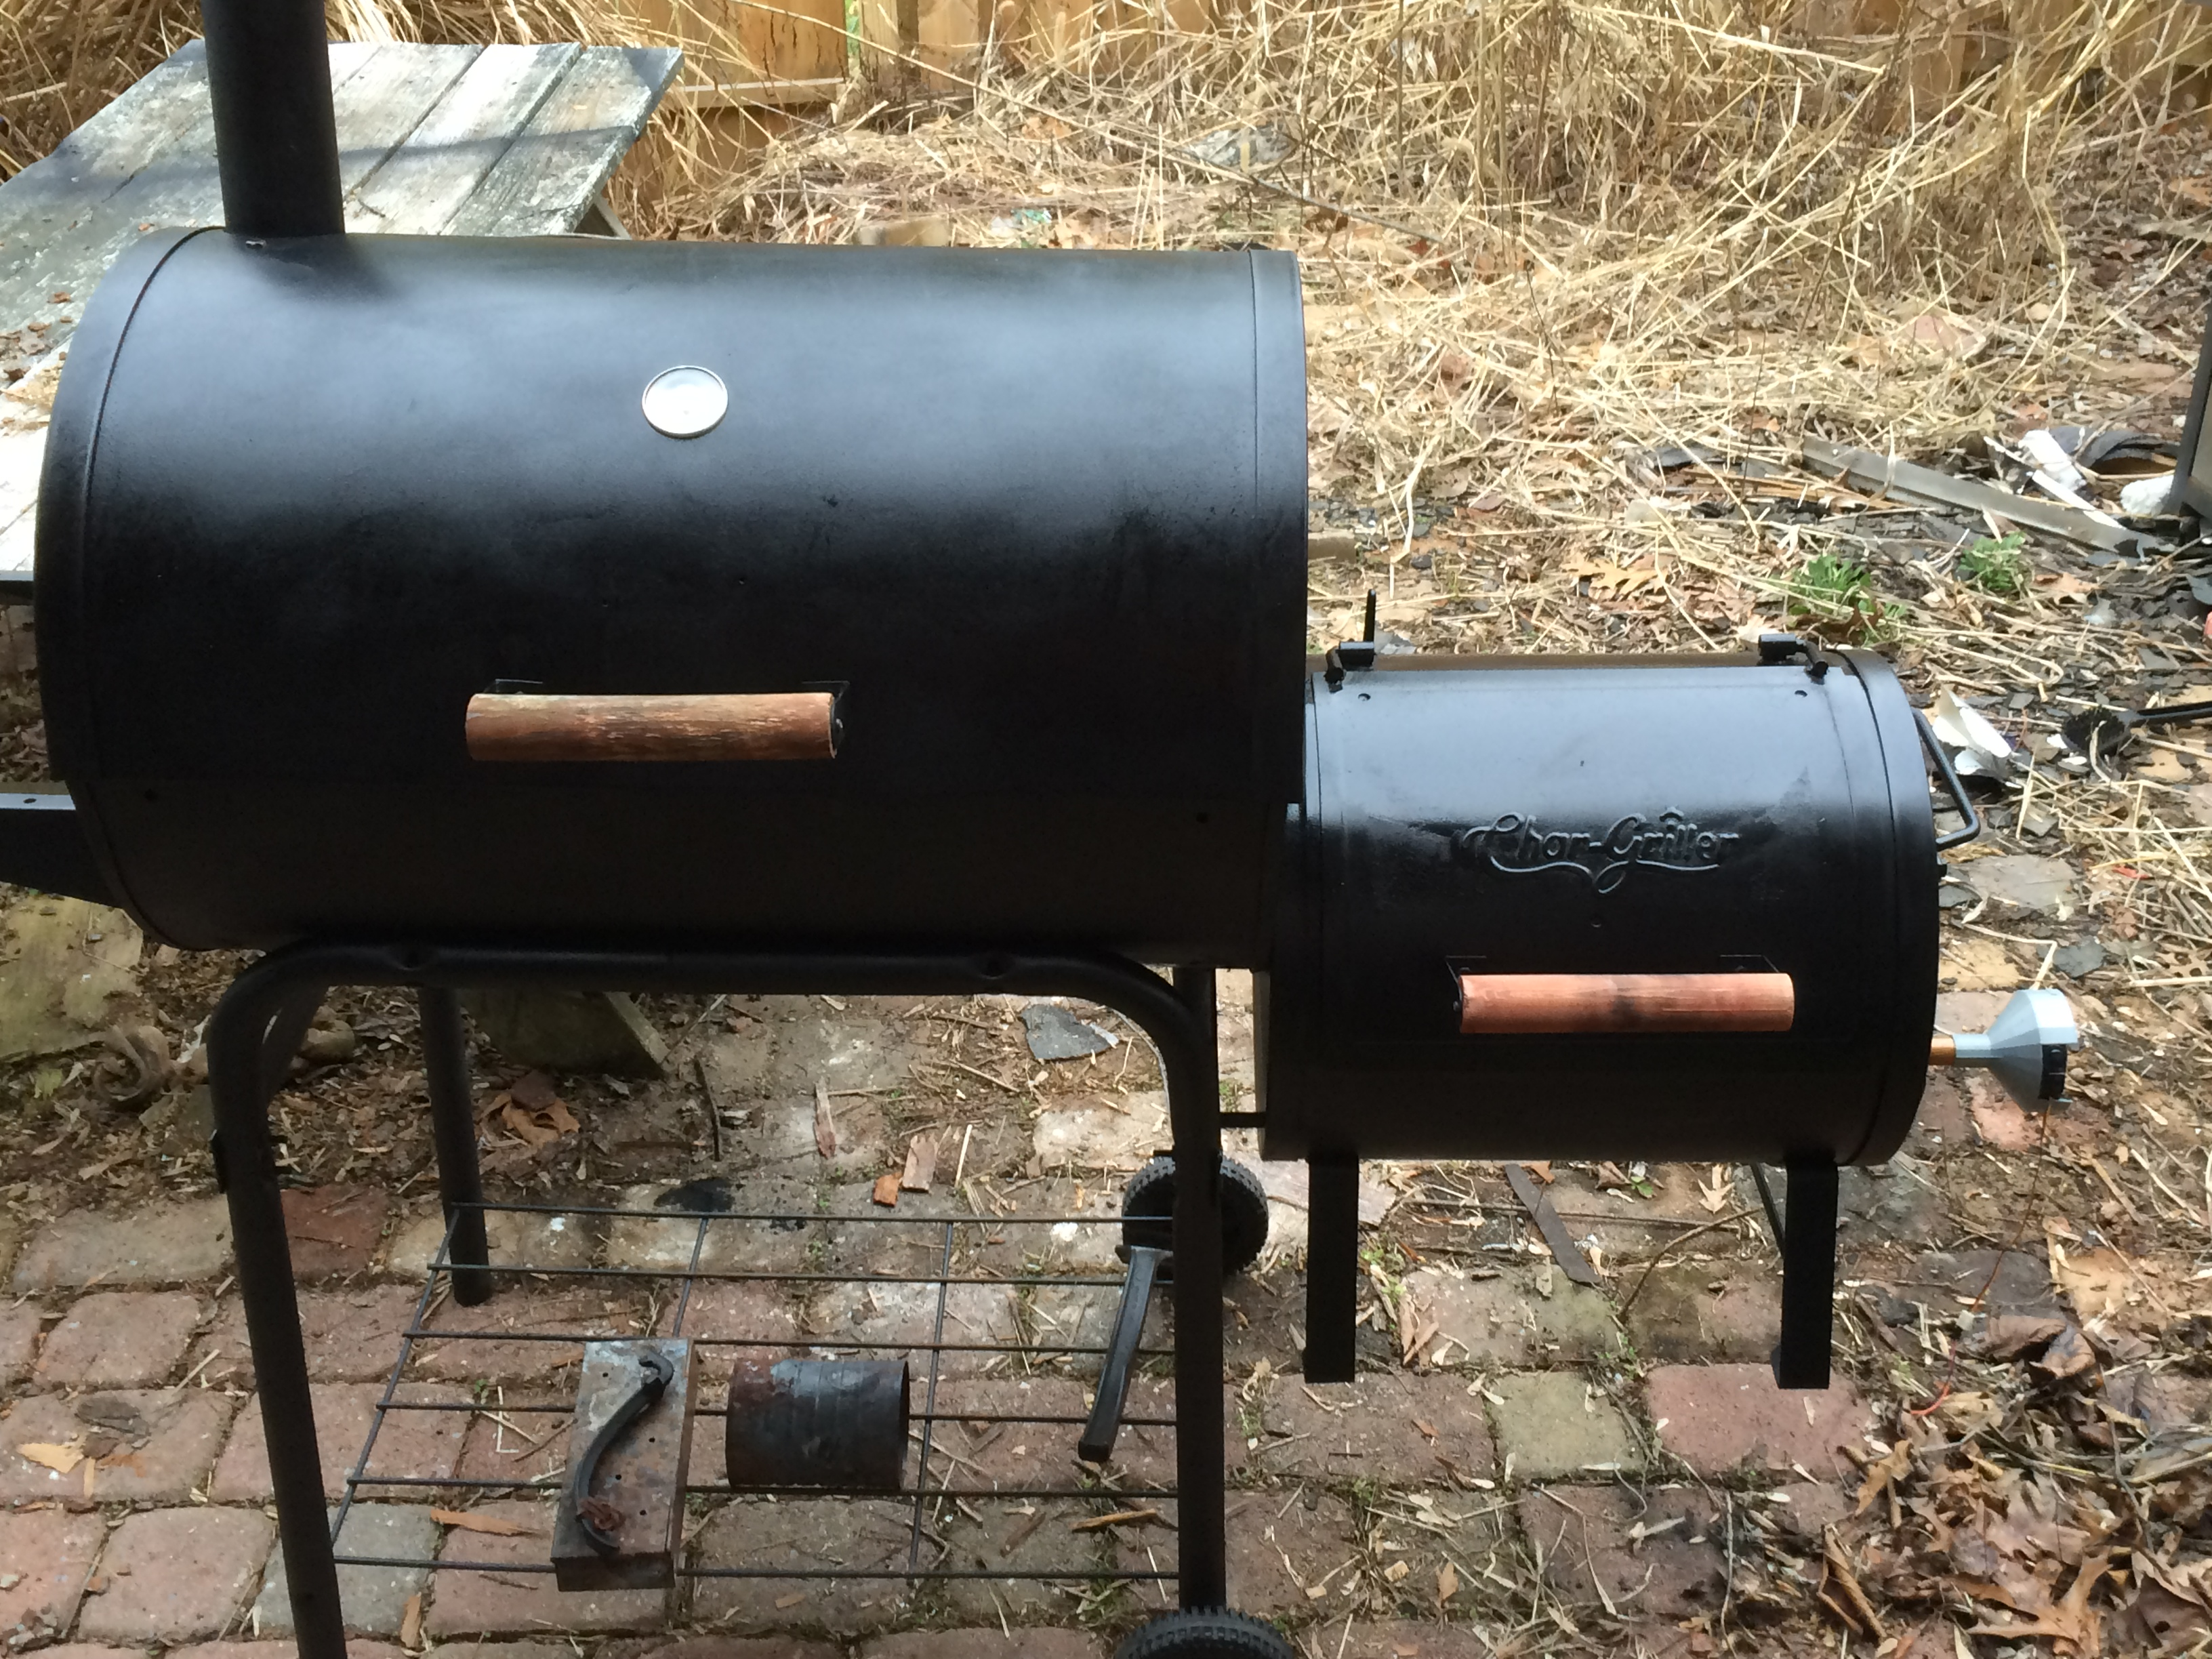 Smart Smoker, the Better Barbecue